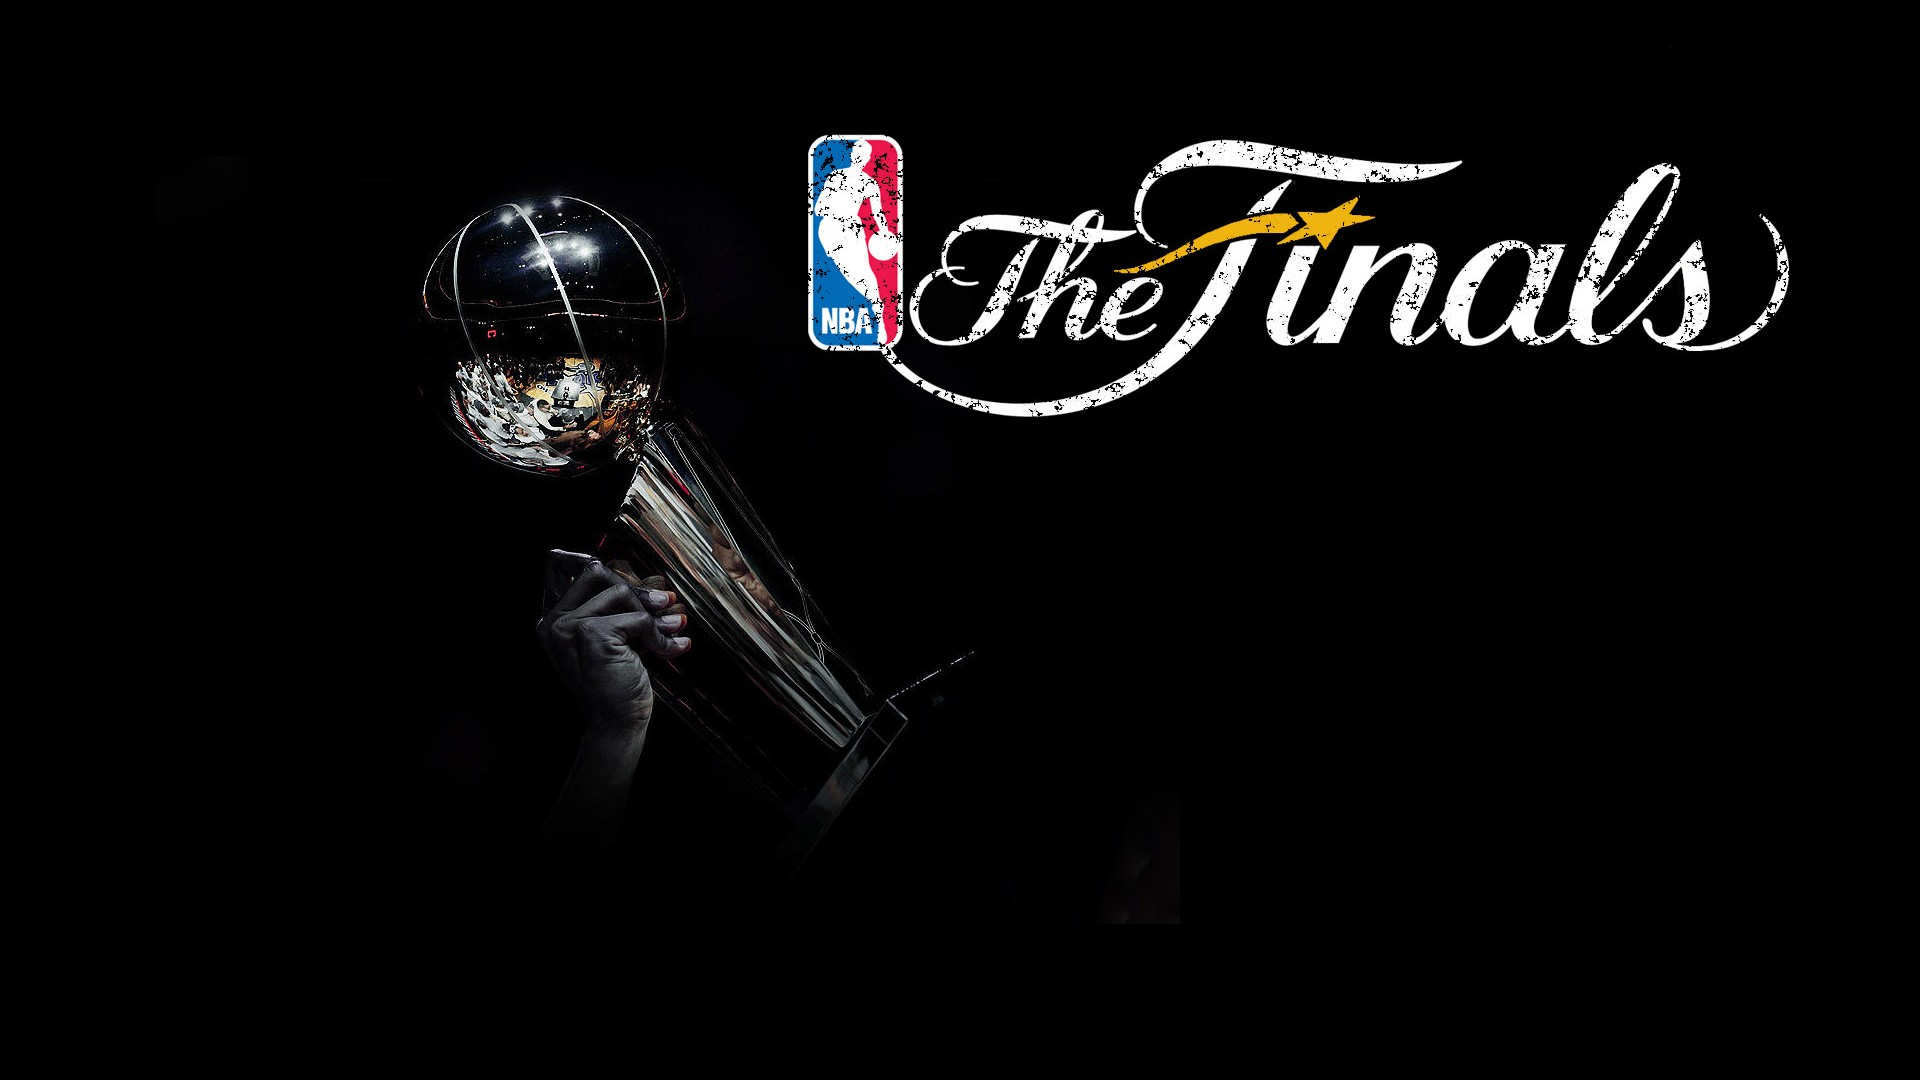 NBA Finals Wallpaper